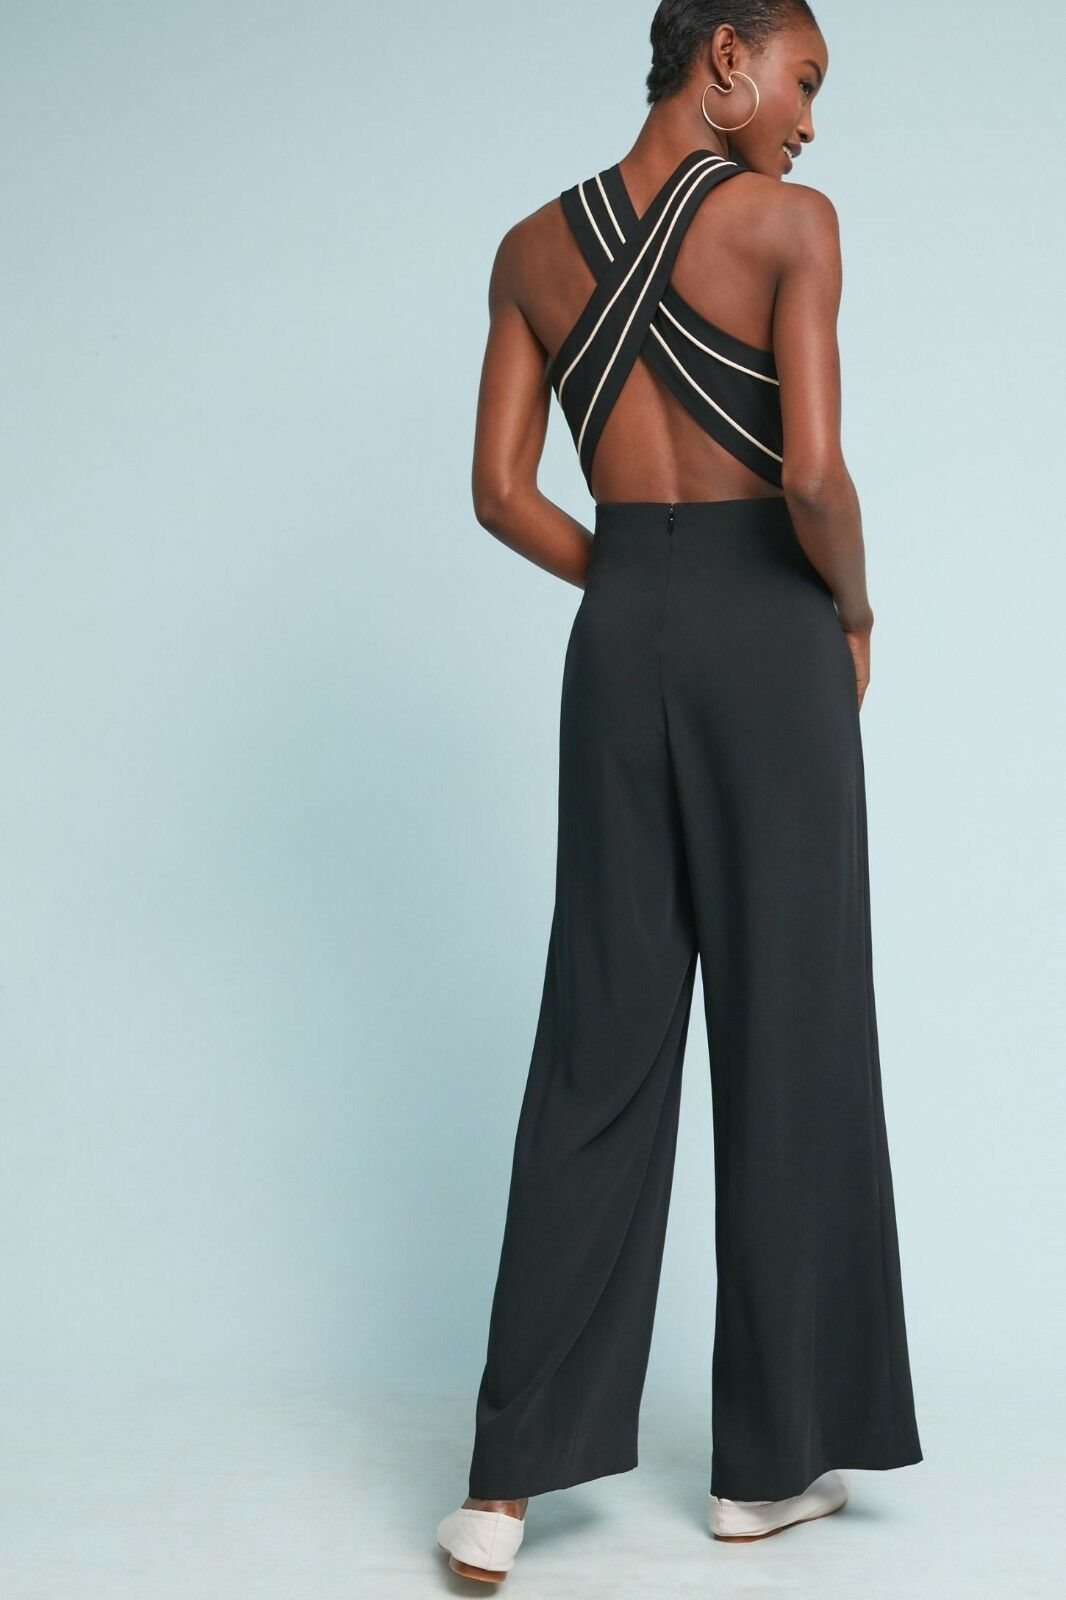 Anthropologie Whitney Tailored Jumpsuit $158 Sz 0 - NWT